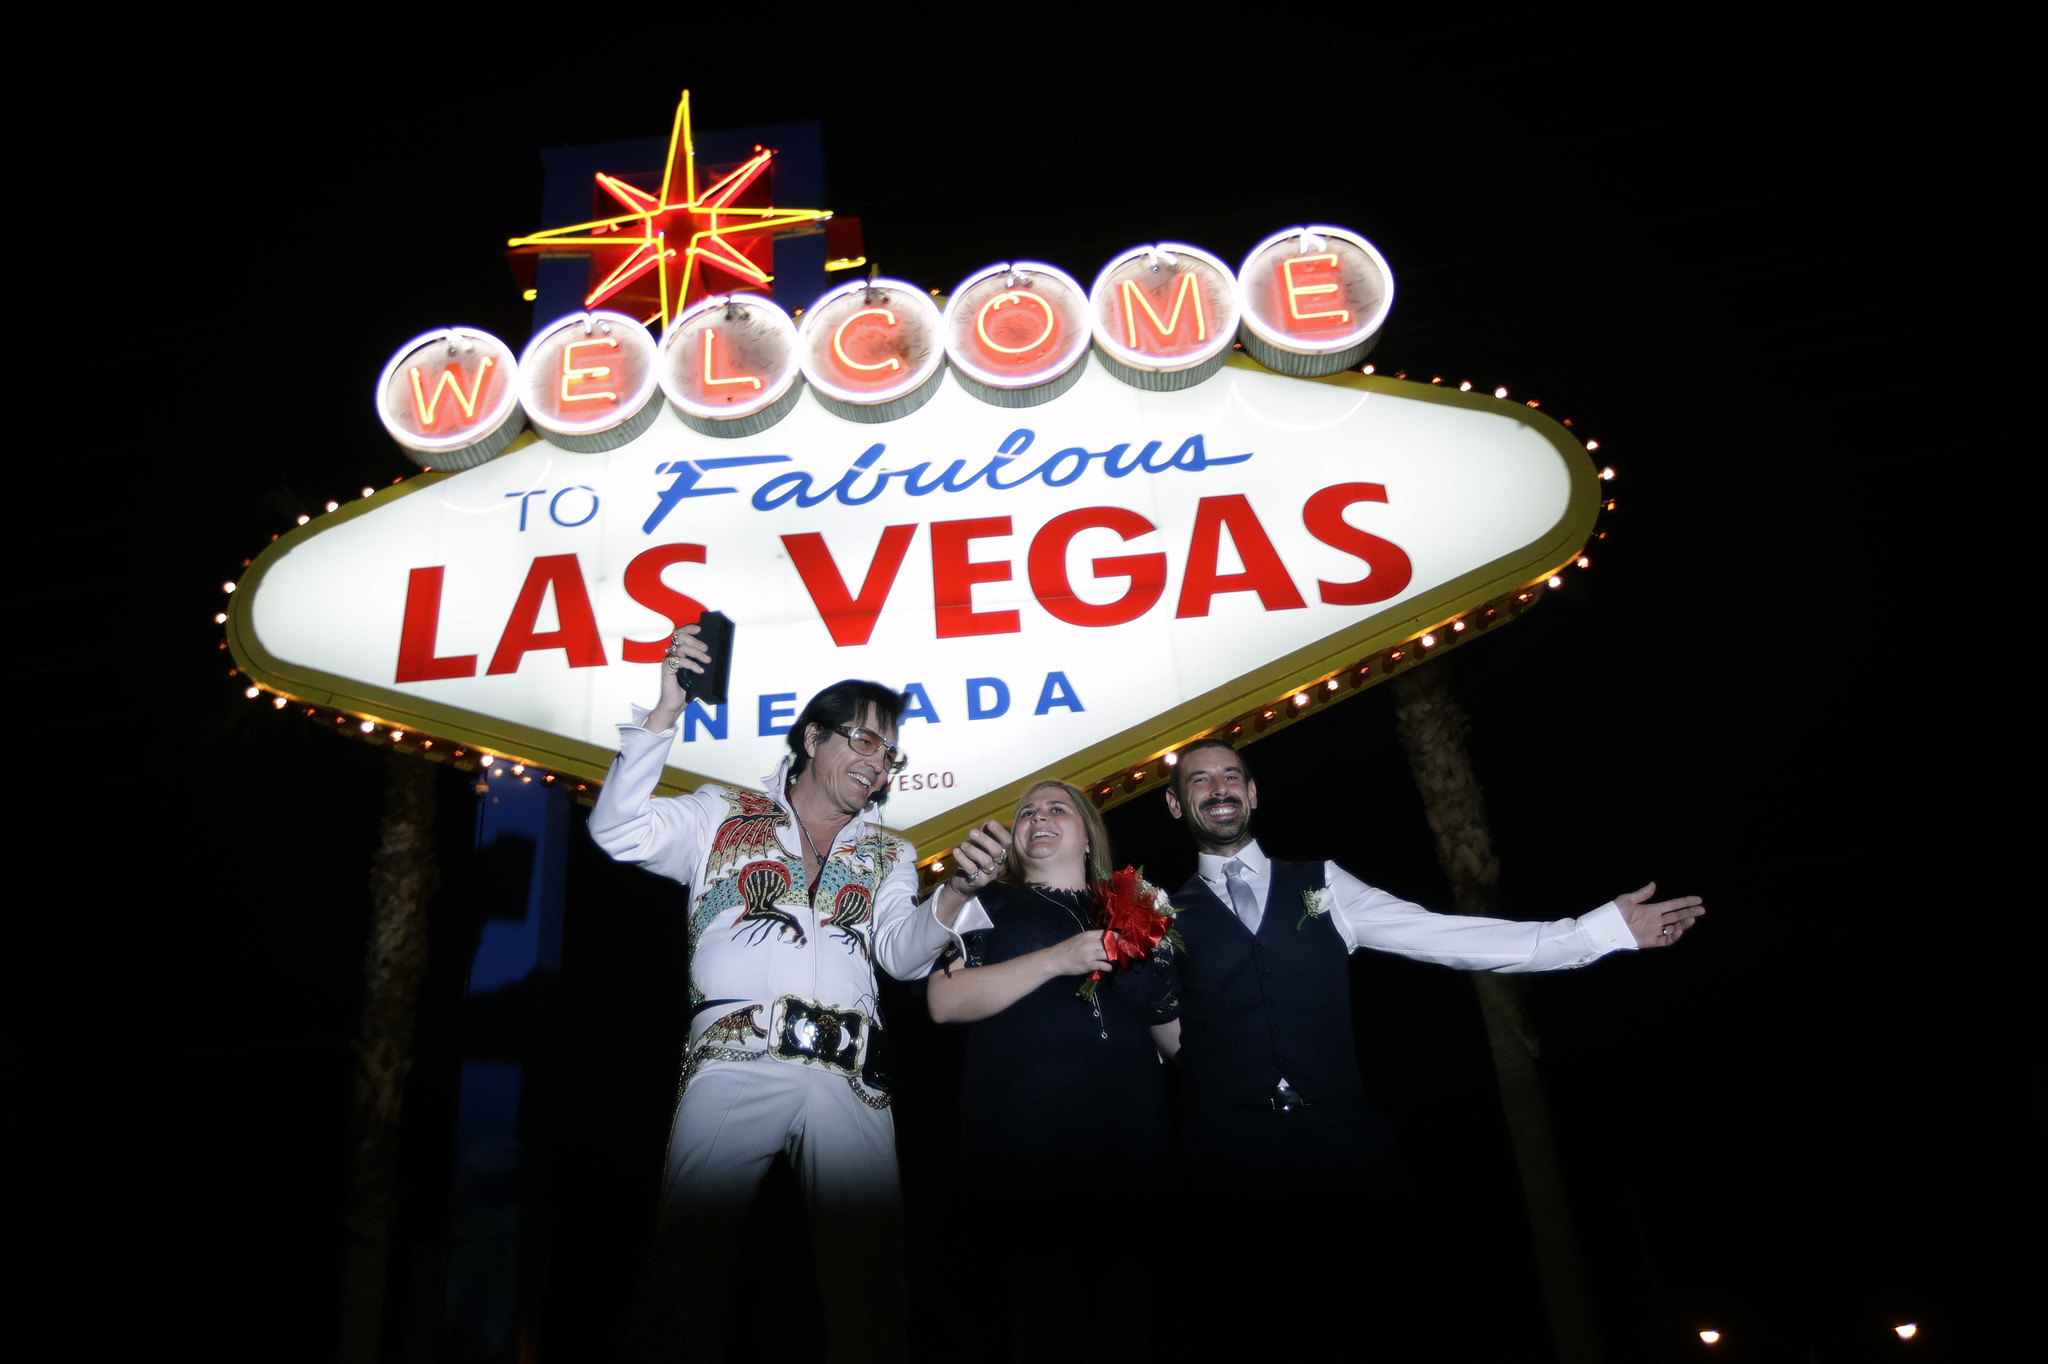 Las Vegas reportedly changing two words in its famous slogan